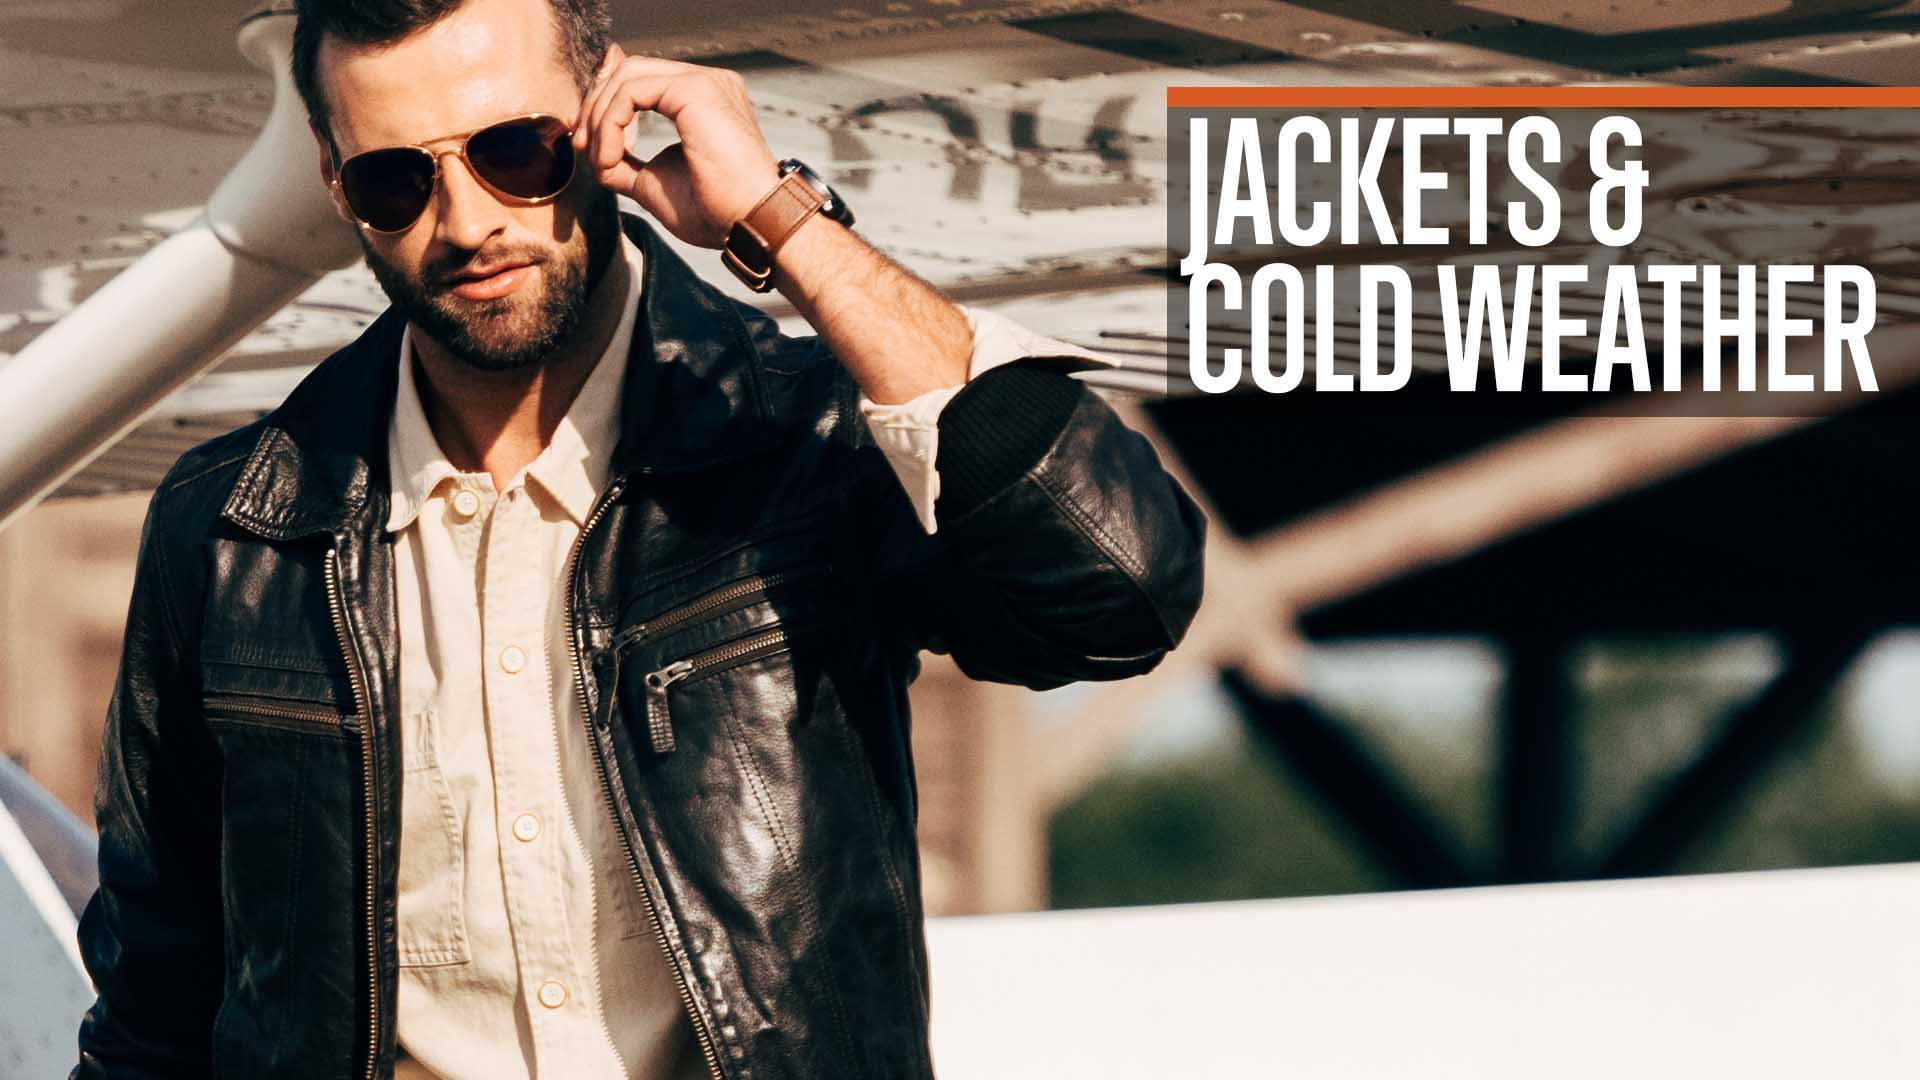 best jacket and coats tactical style